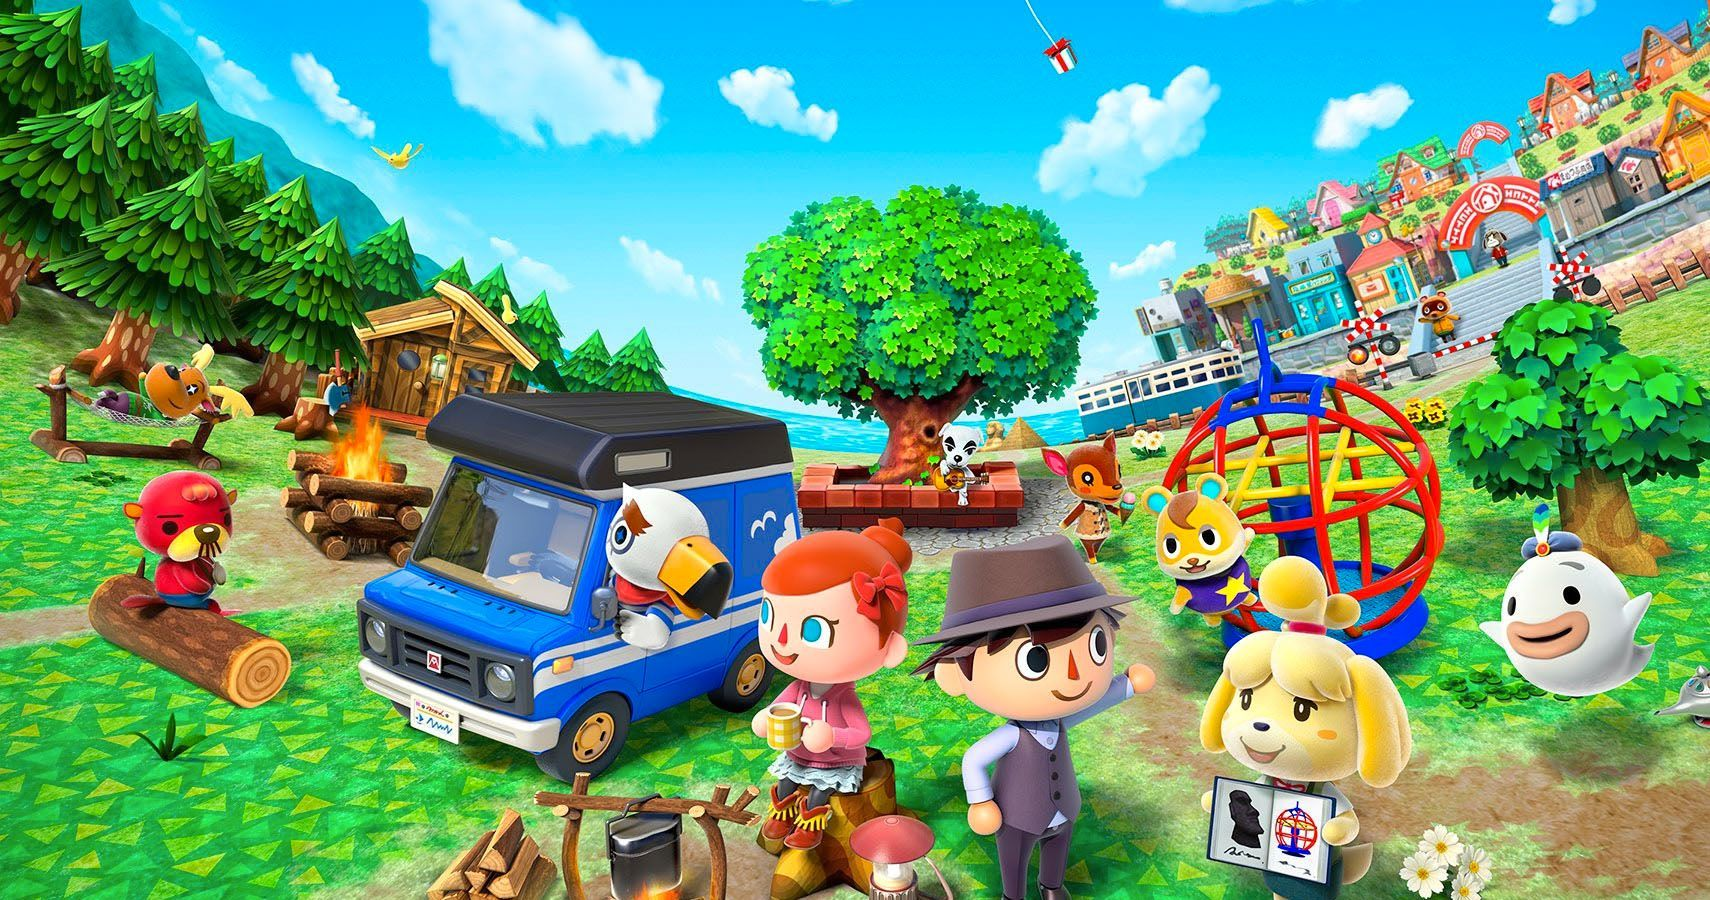 10 Weirdest items You Can Own in Animal Crossing Games ...